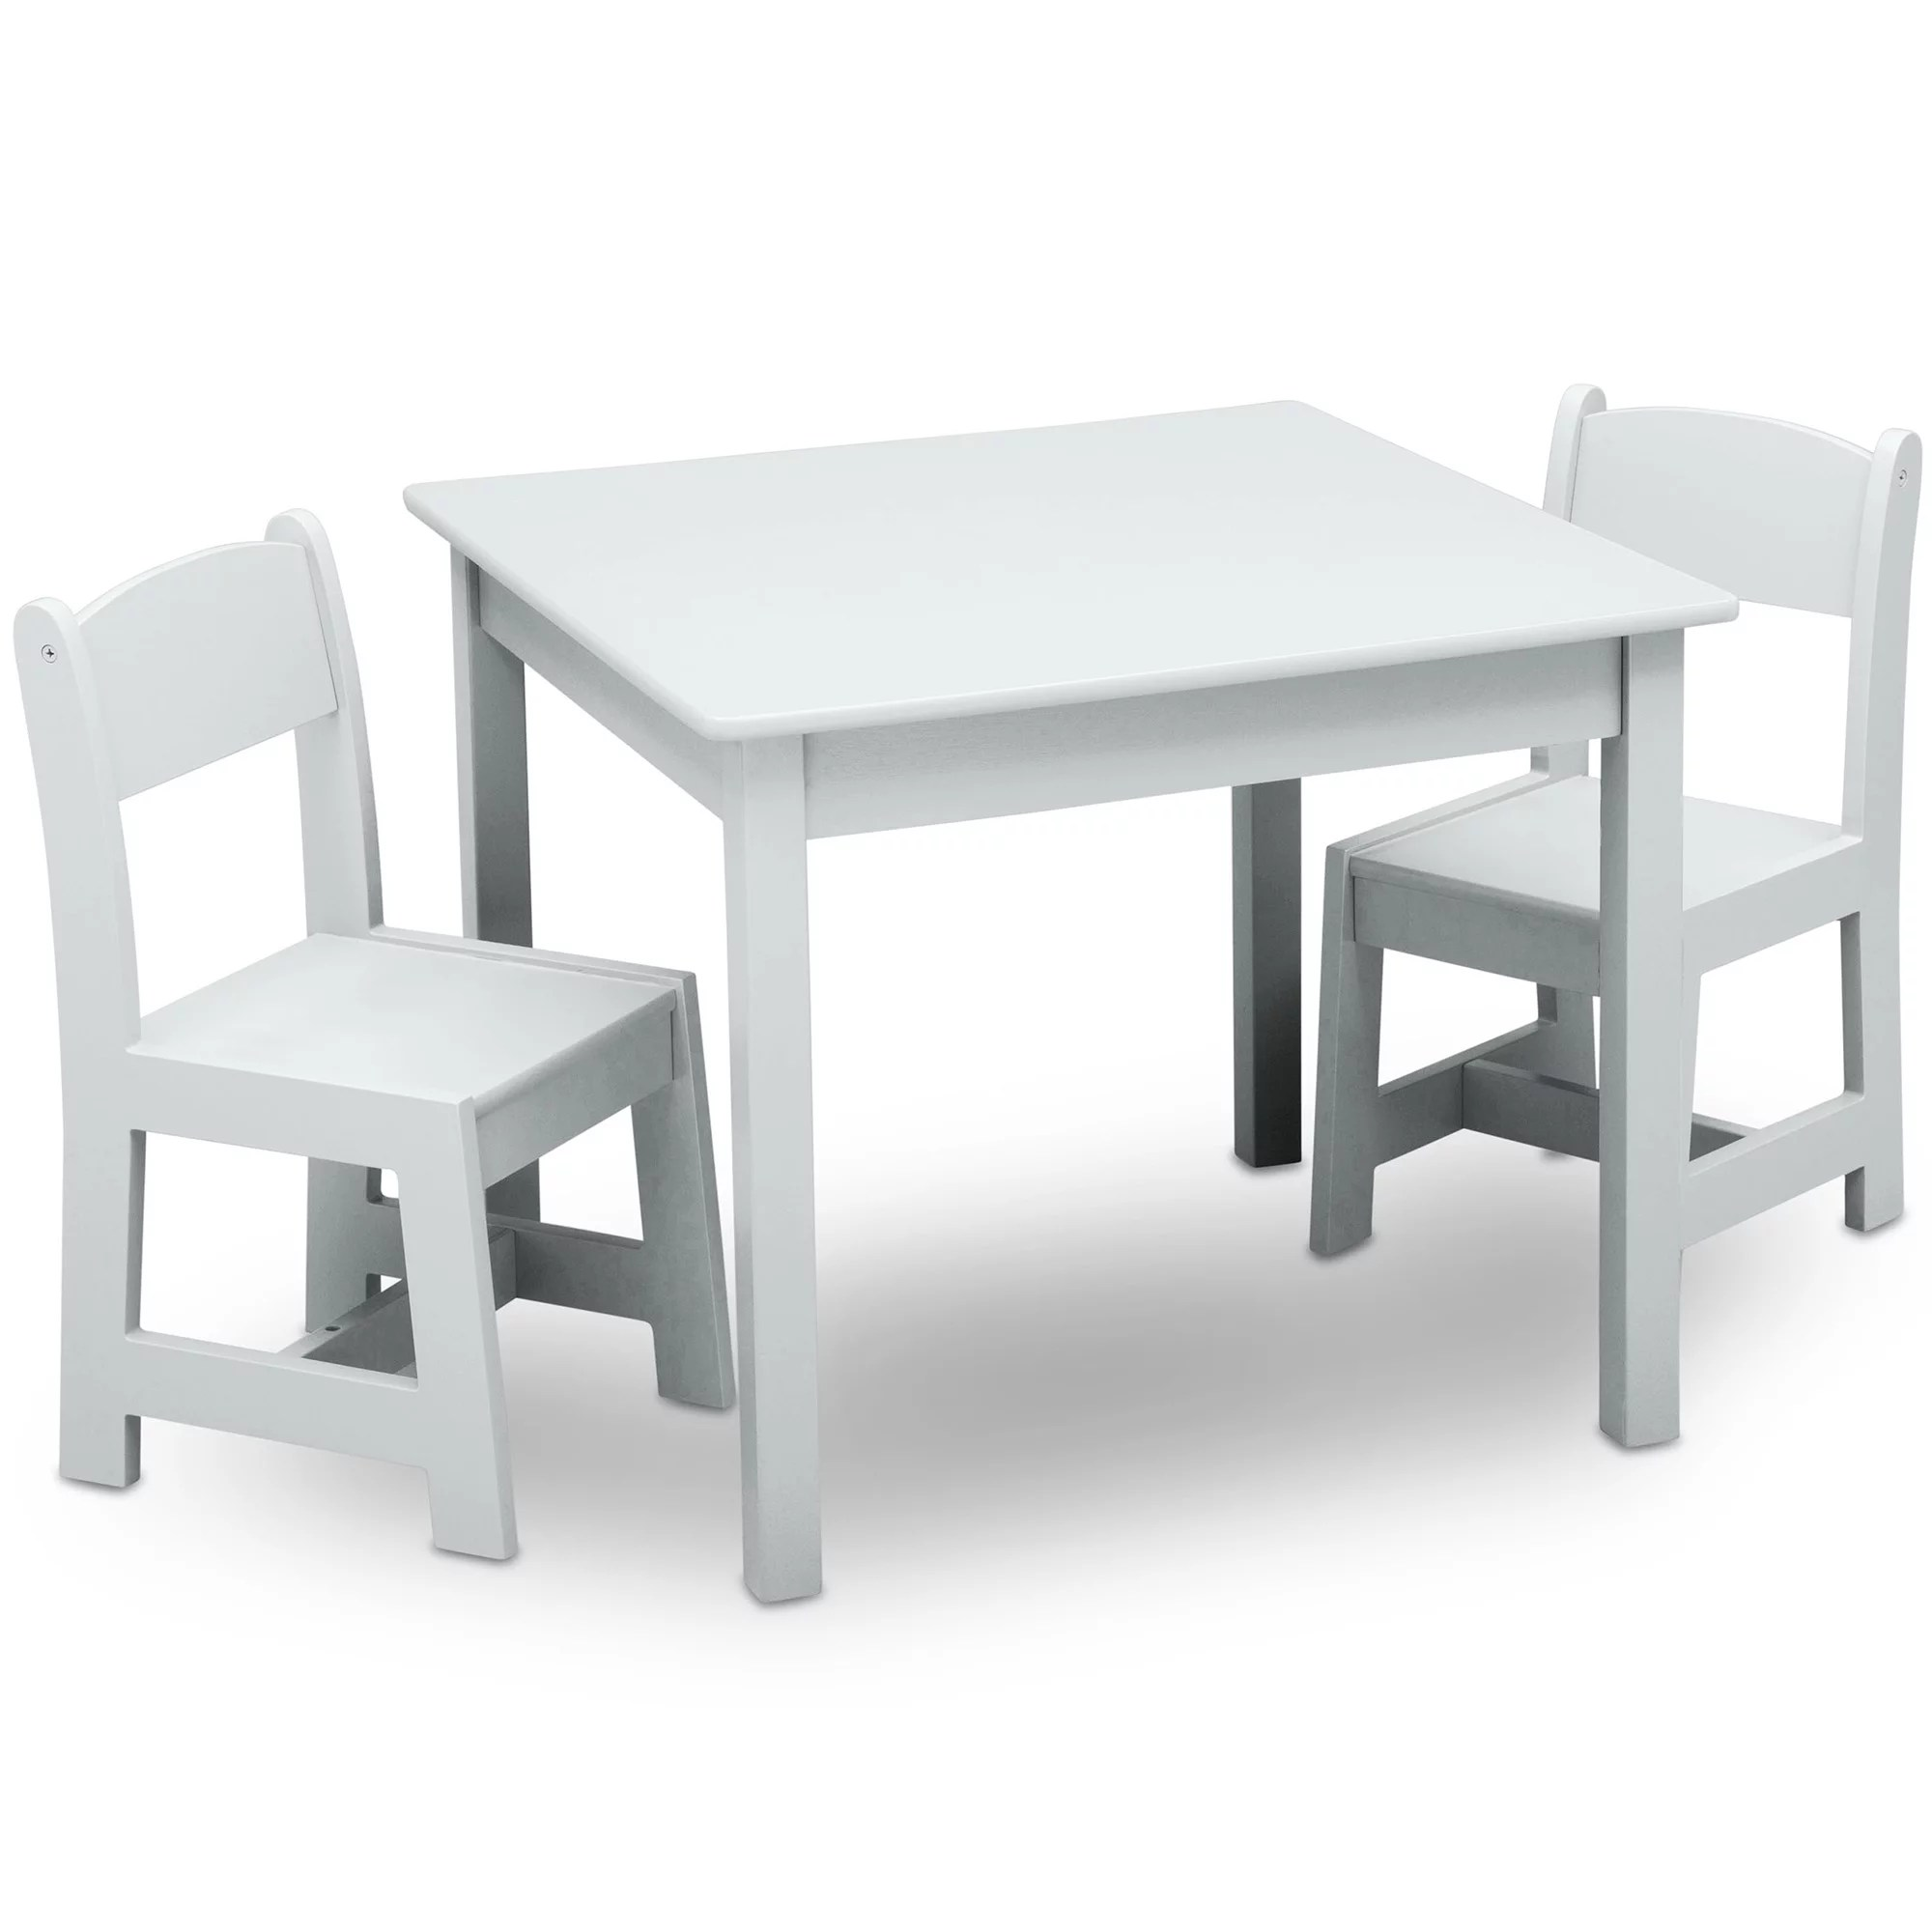 Childrens Table And Chair Set Delta Children Classic Kids Table And Chair Set Bianca White